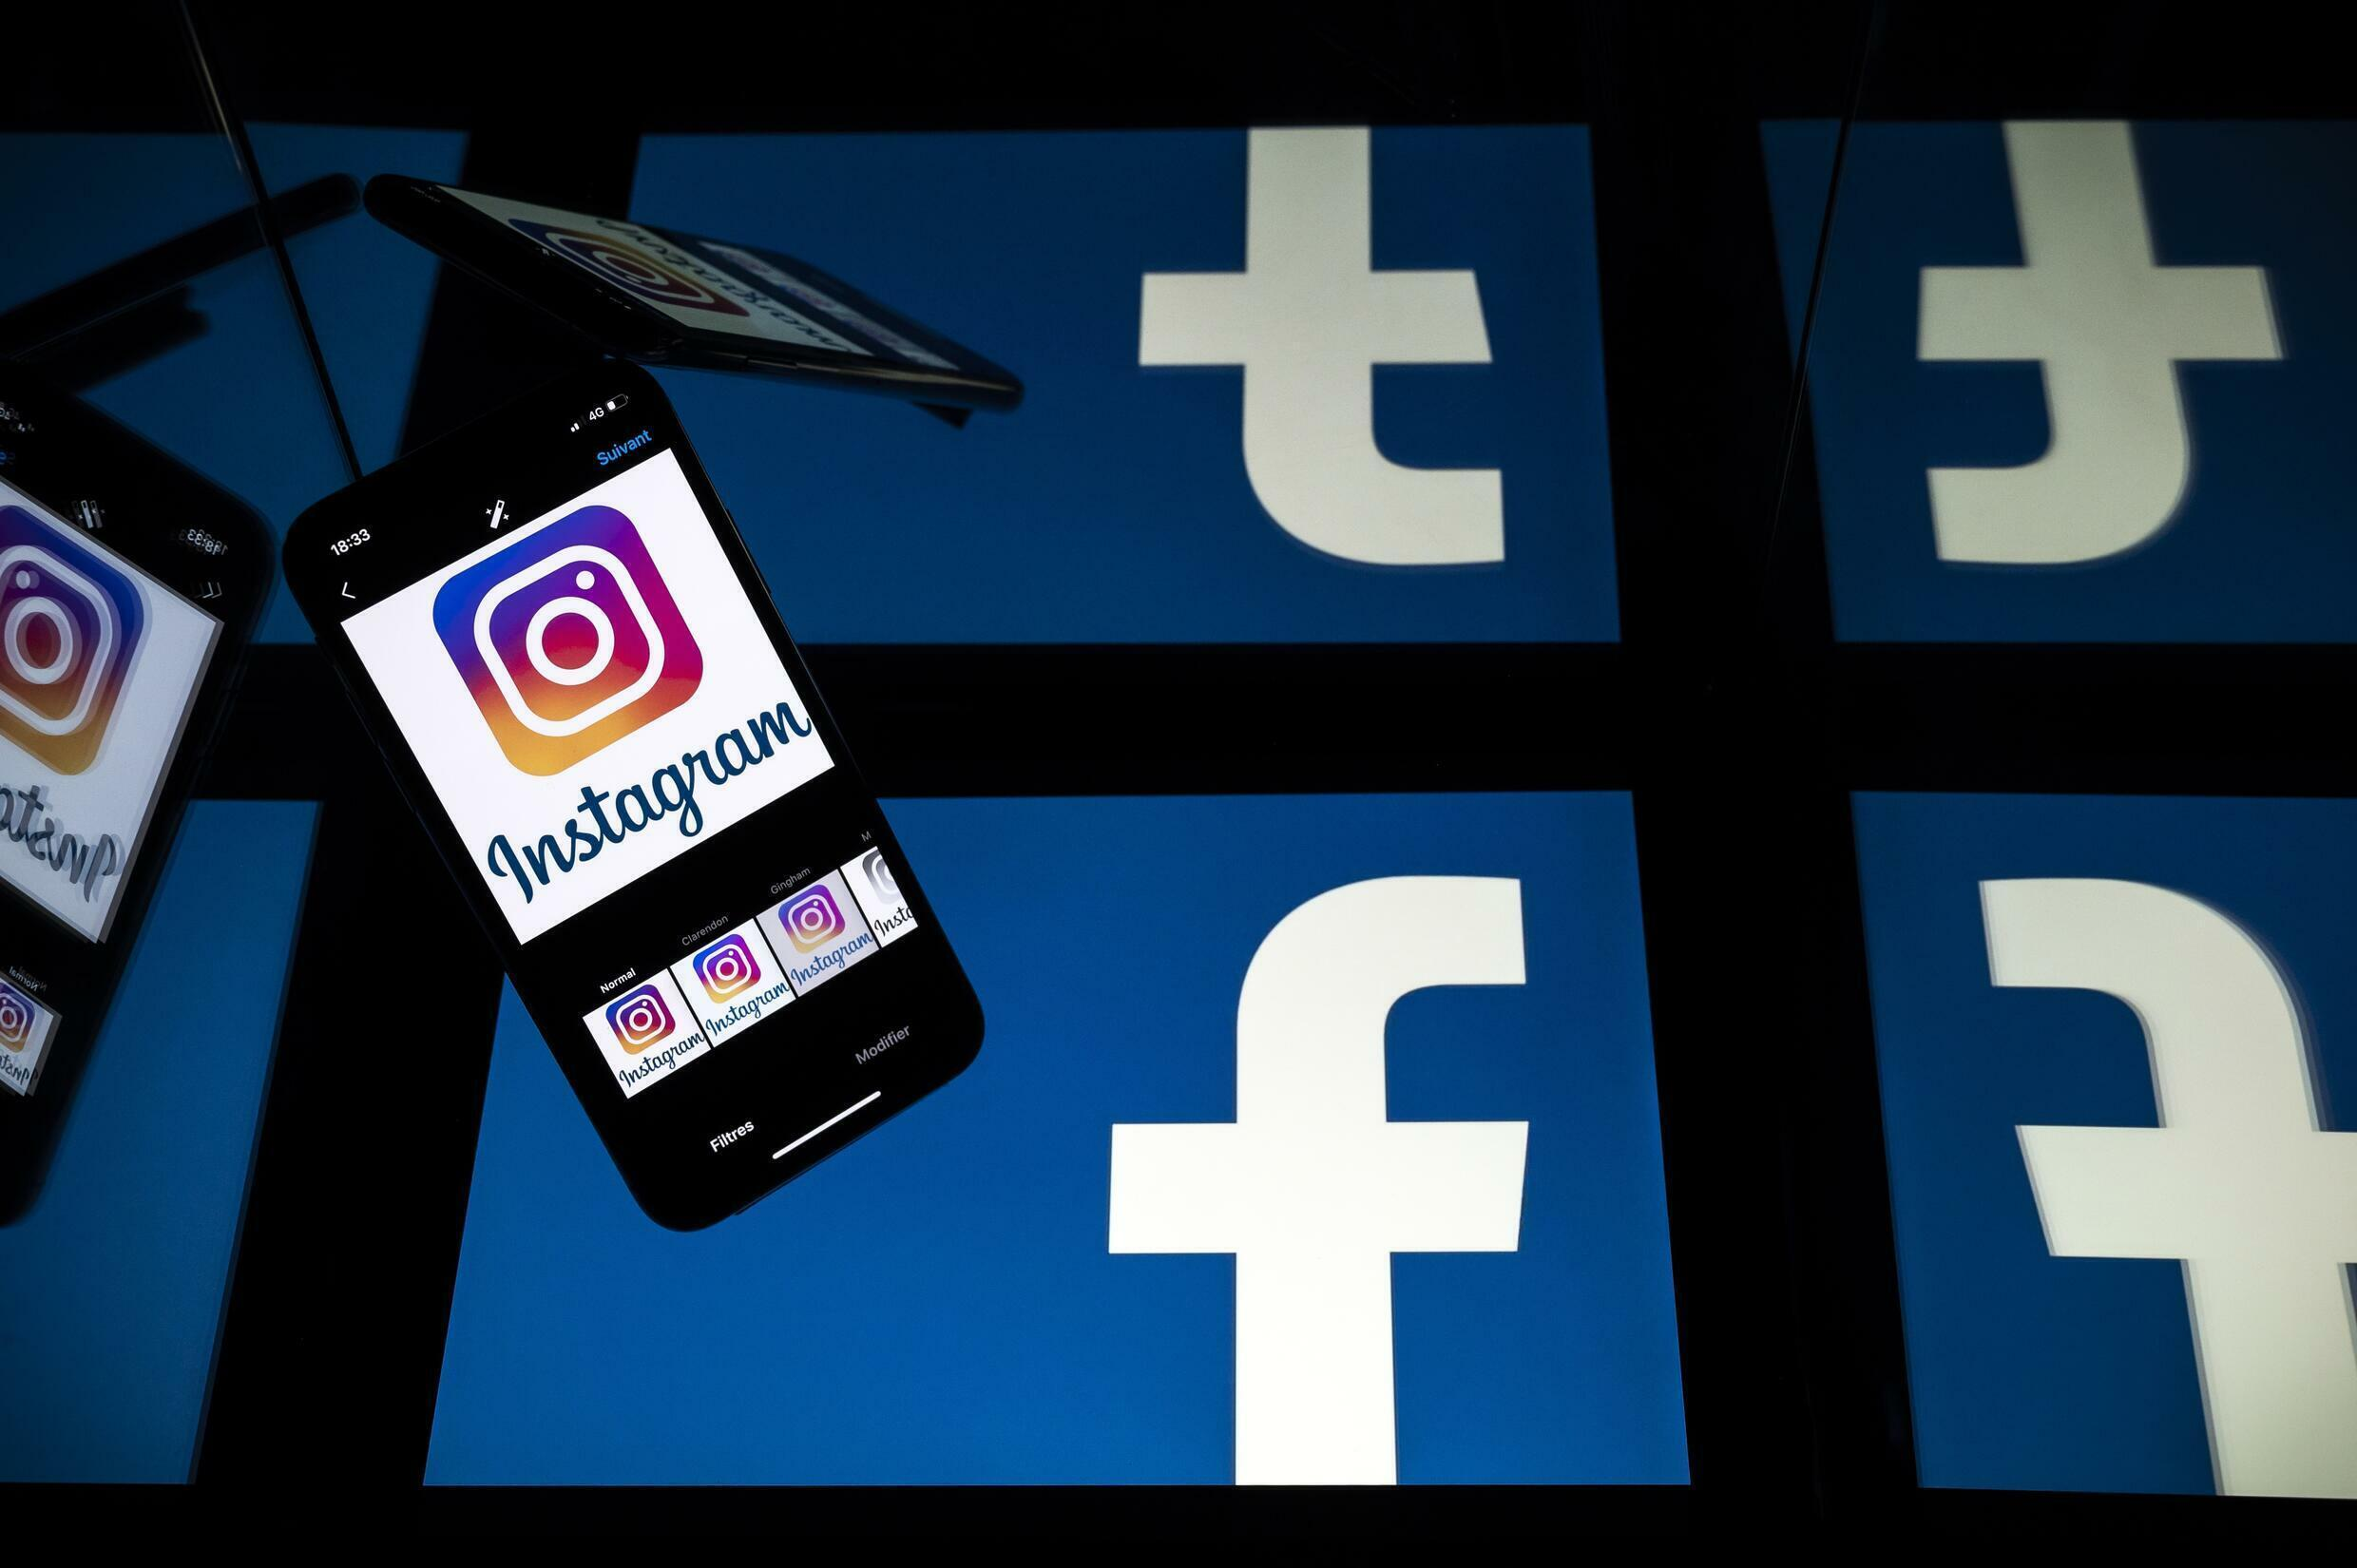 MI5 chief says extremism on social media is growing and criticized Facebook plan to roll out end-to-end encryption